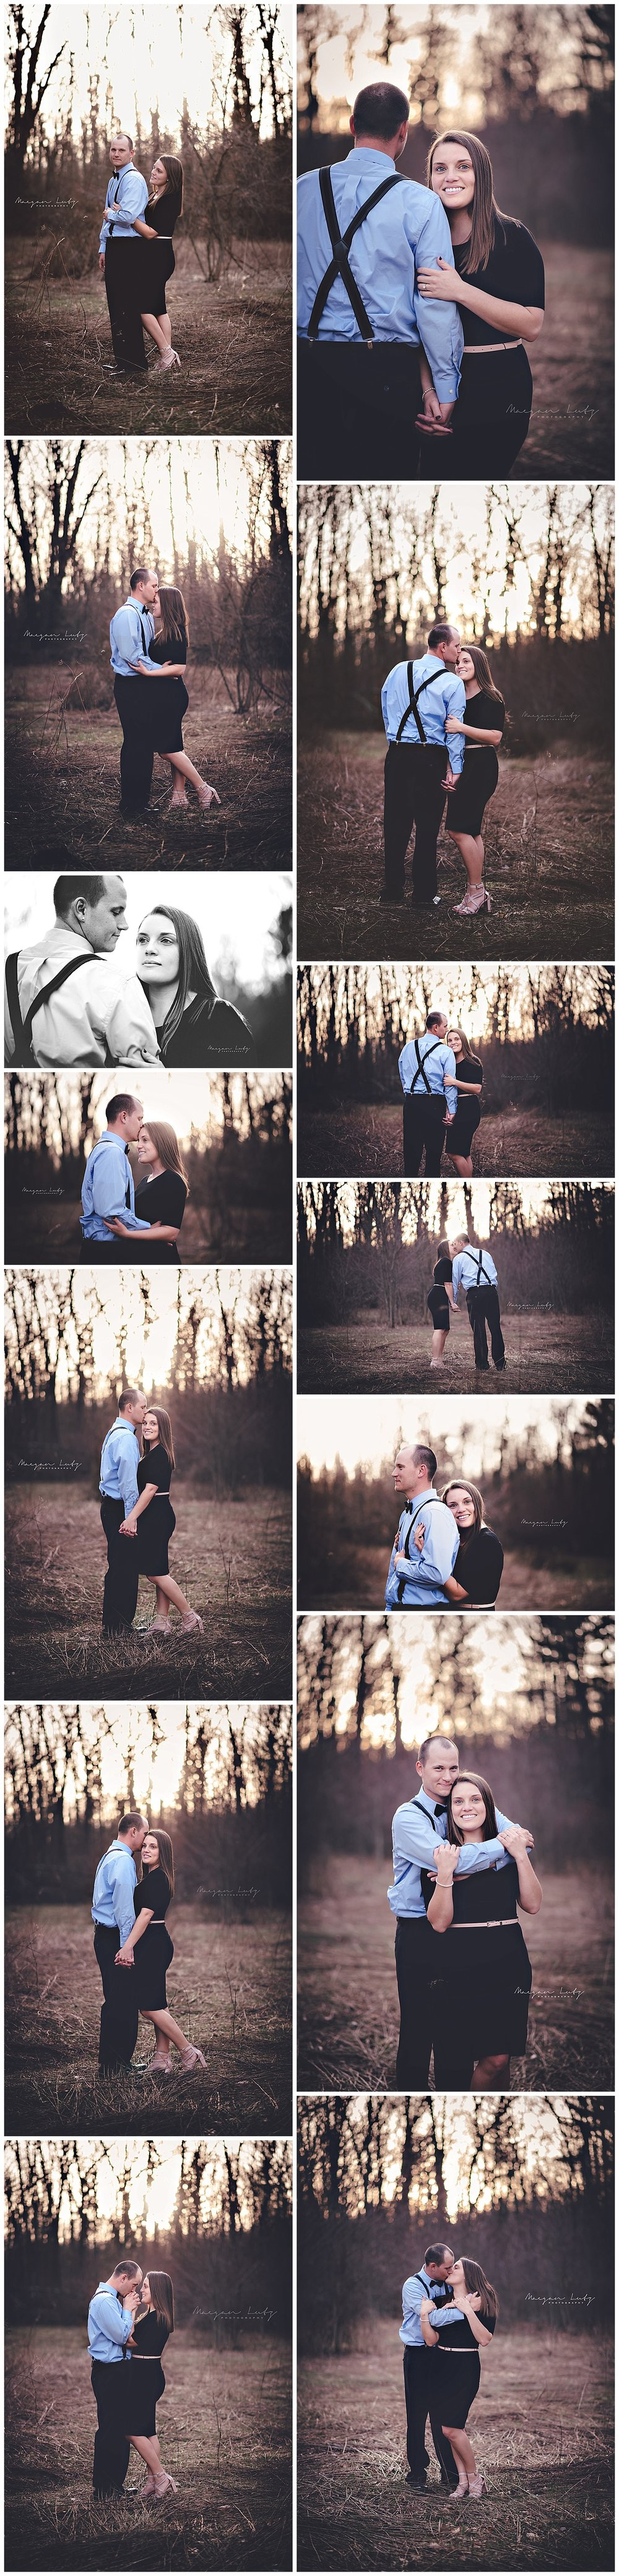 Engagement_Photographer_In_NEPA_Outdoor_Sunset_Session_0017.jpg